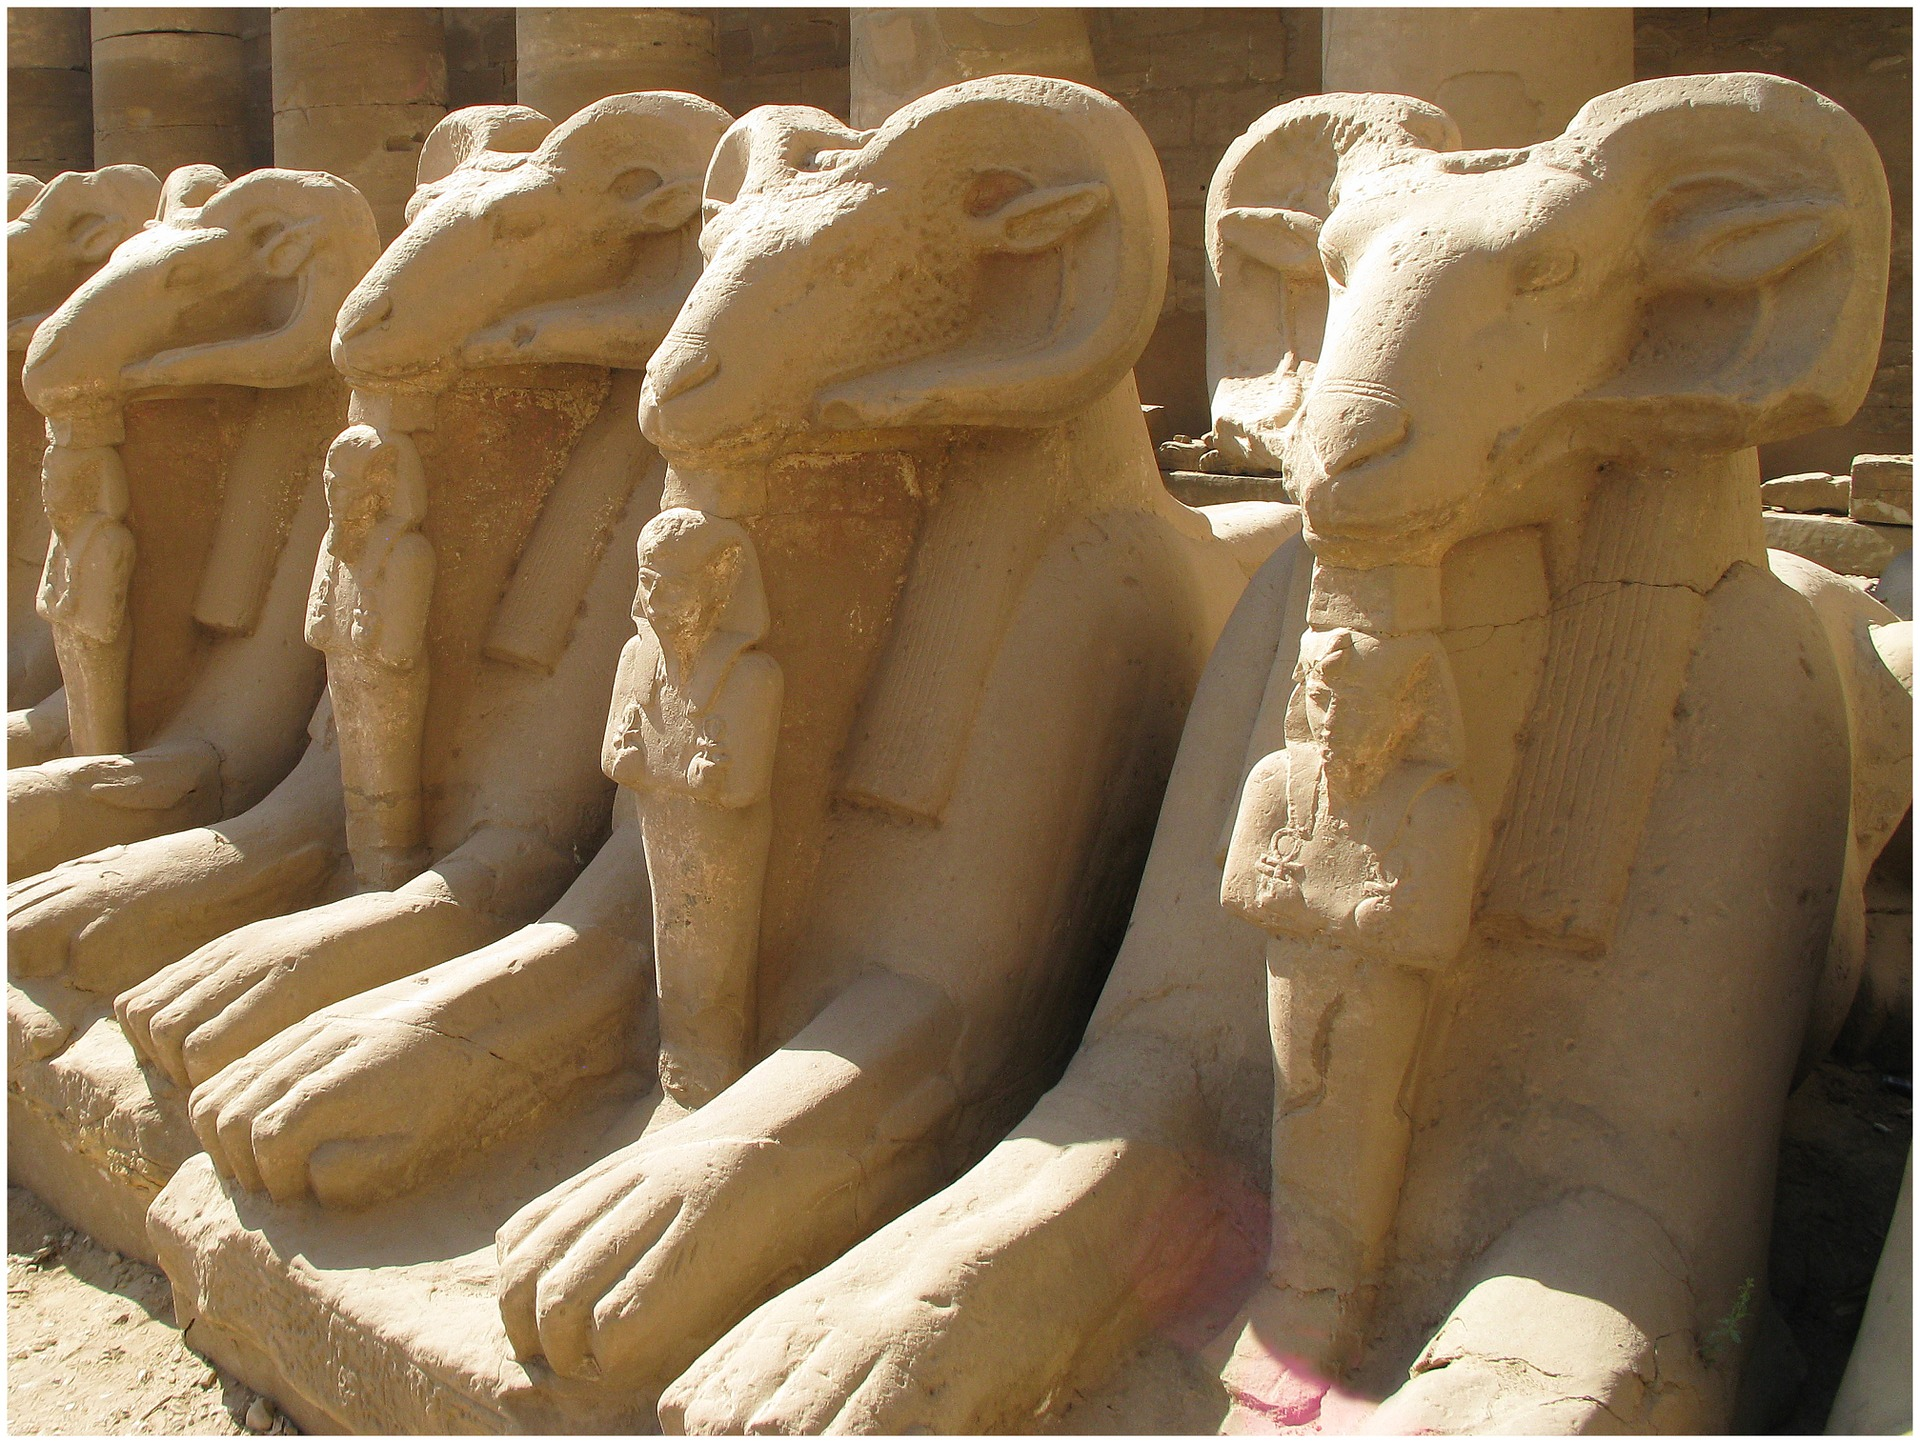 The Treasures of Egypt - Temple Complex of Karnak, Egypt